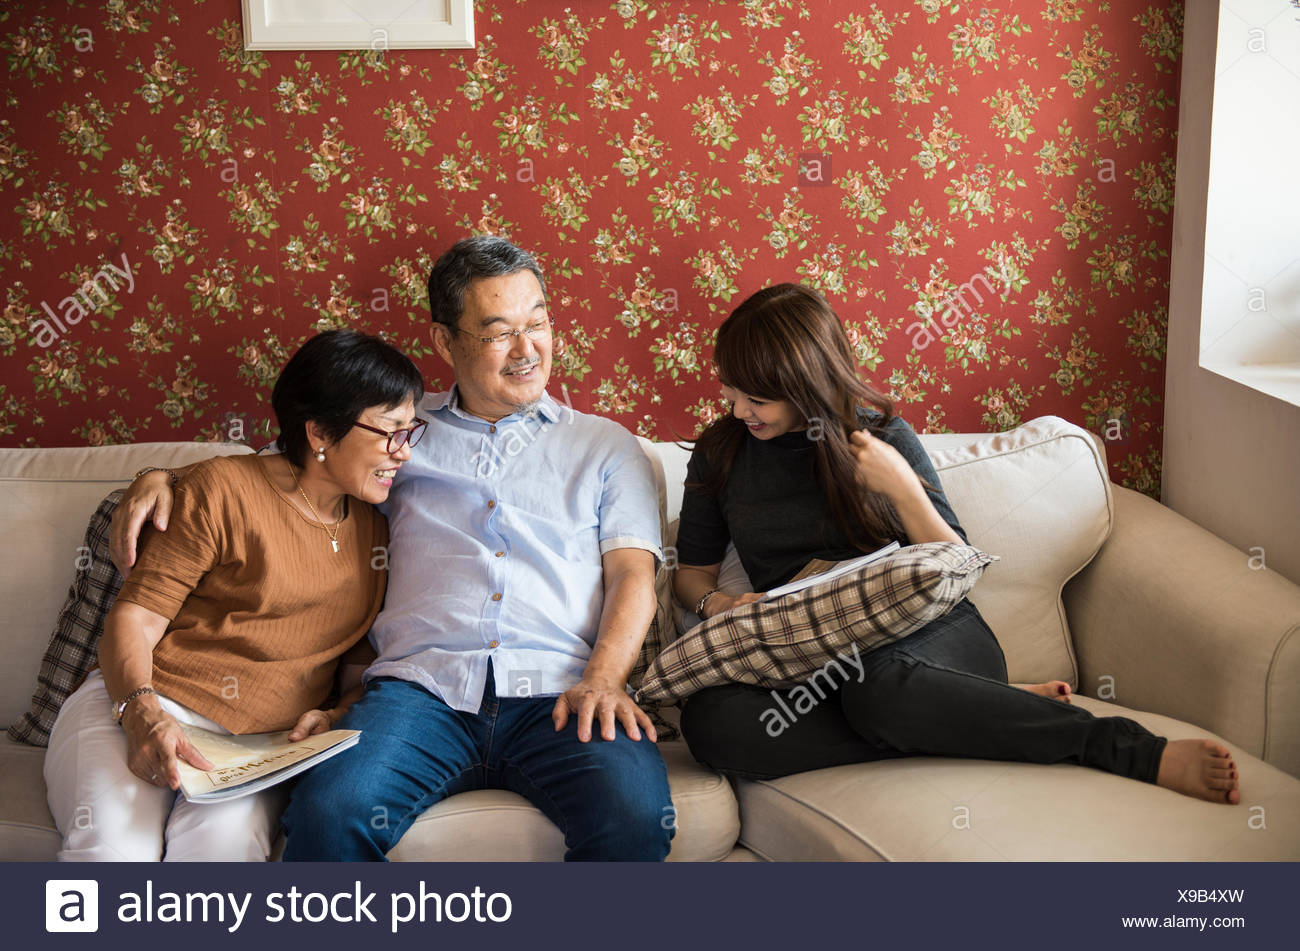 Asian family having fun in the living room together - Stock Image